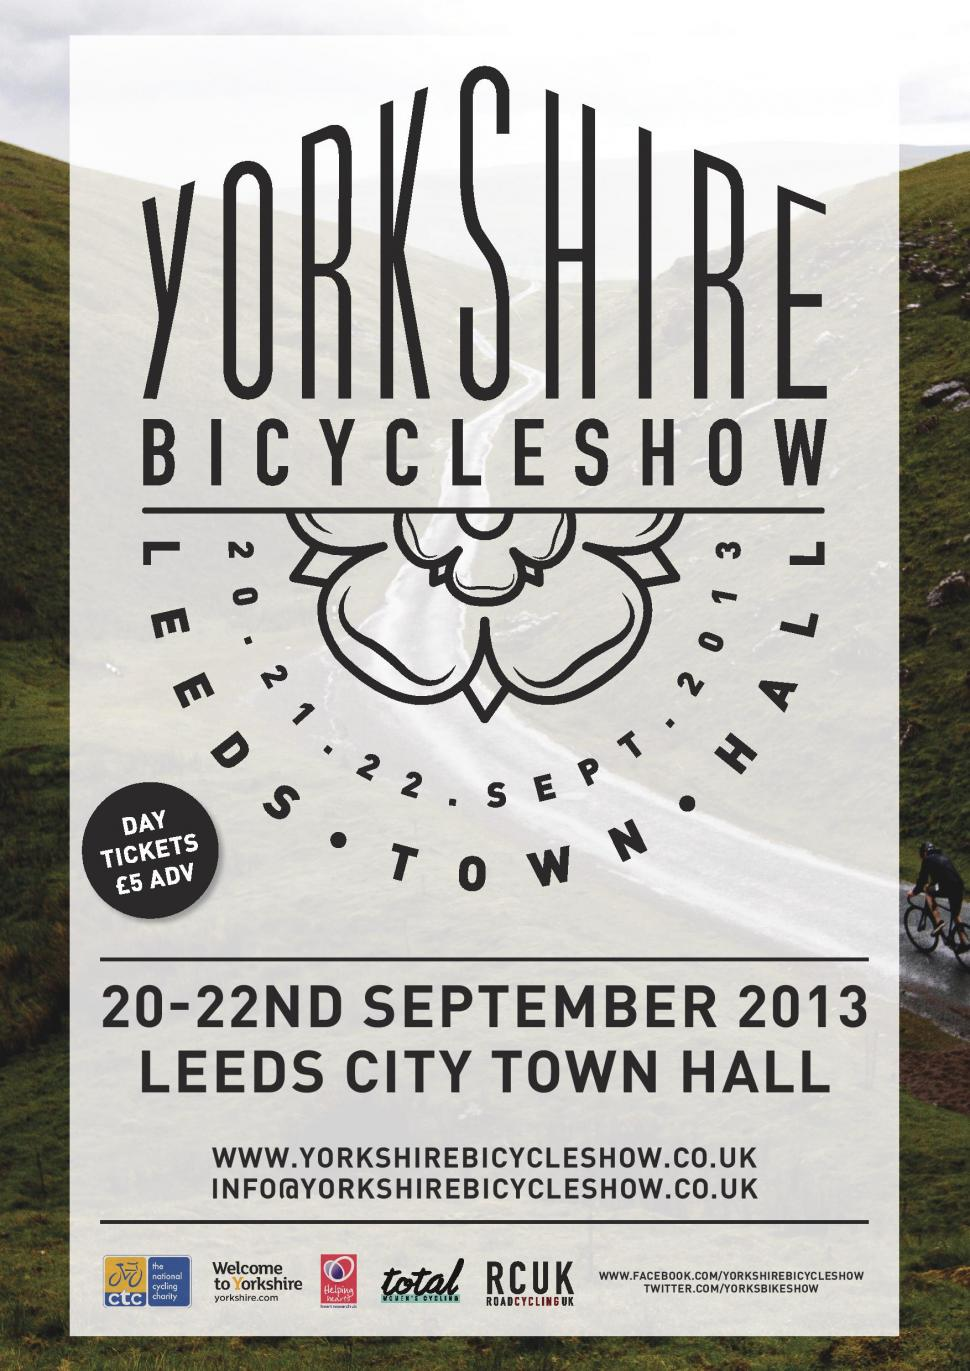 Yorkshire Bicycle Show